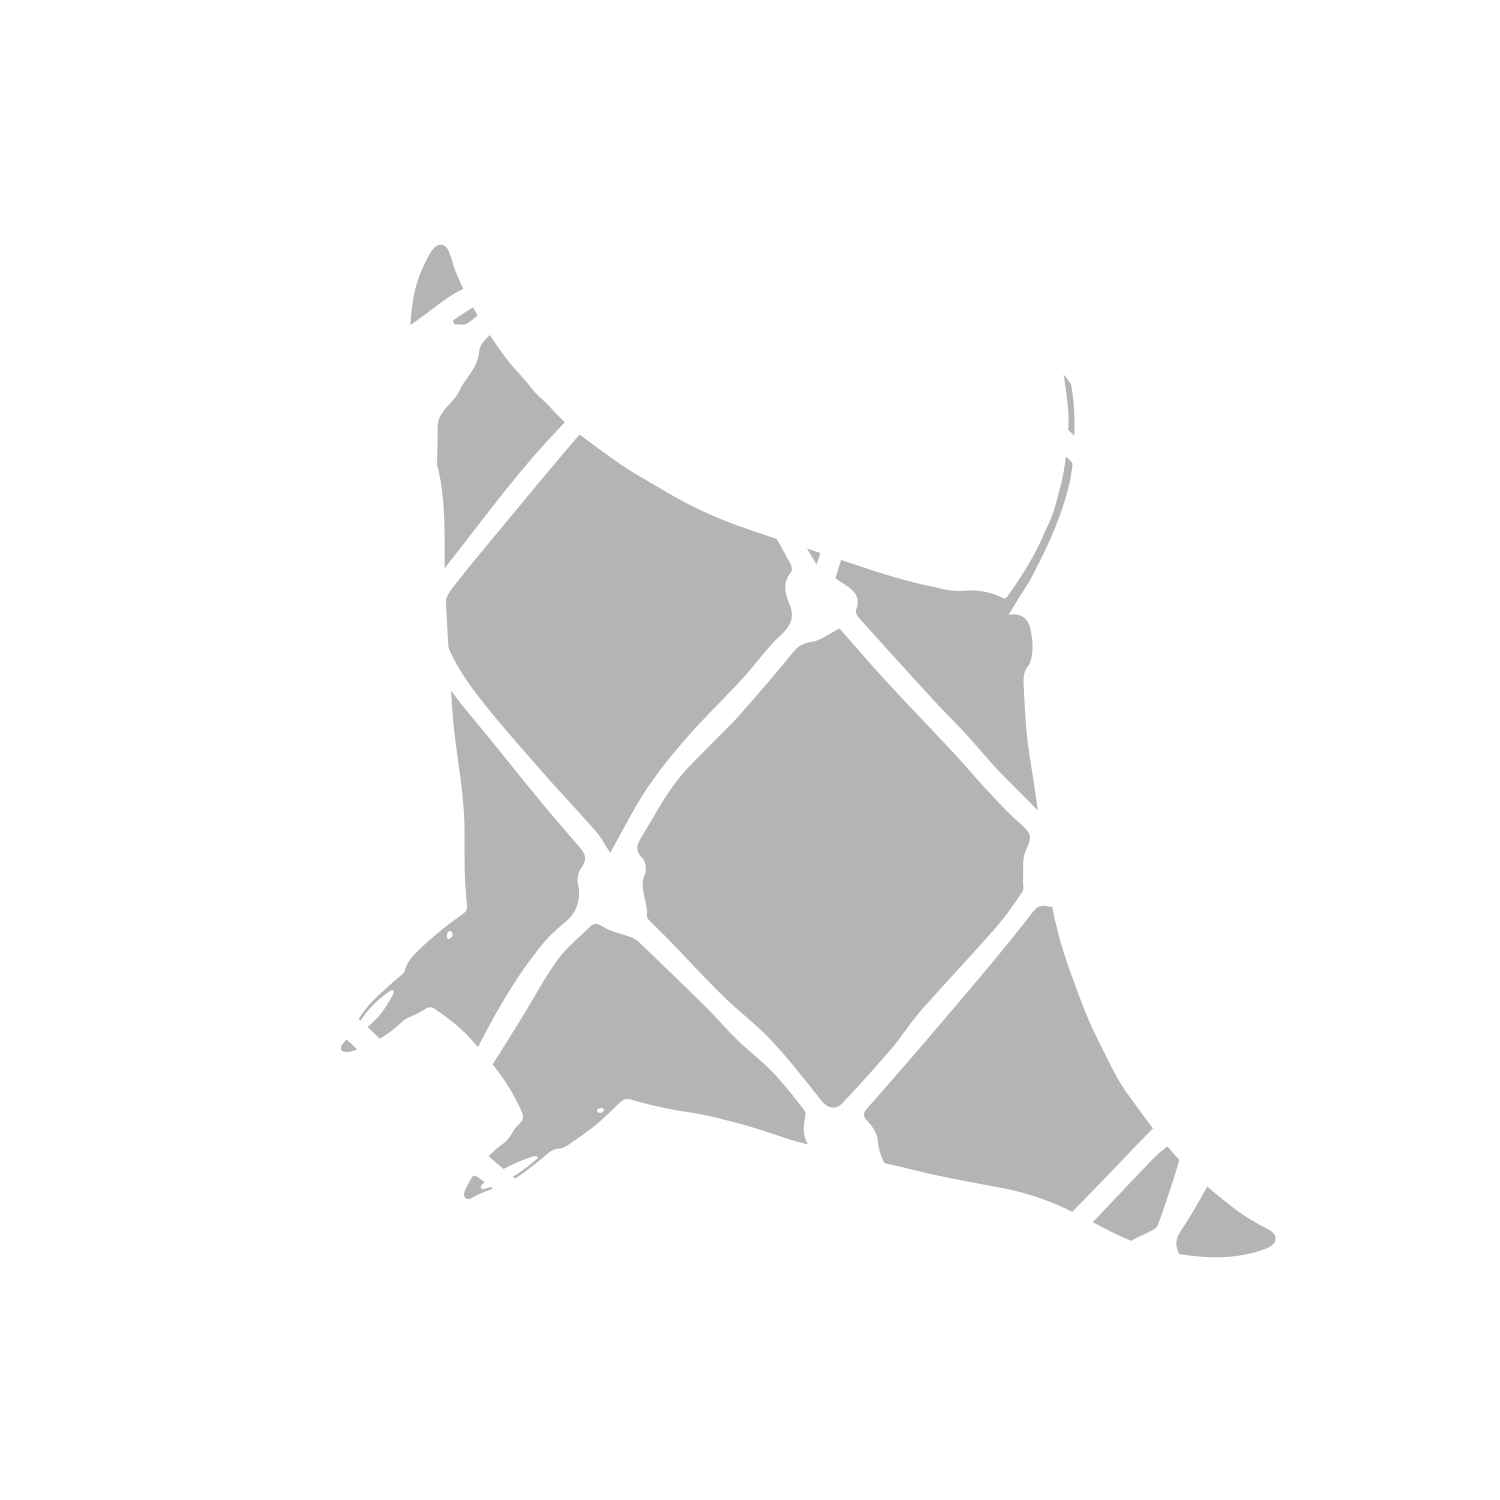 Threats_Icons_Bycatch_White.png